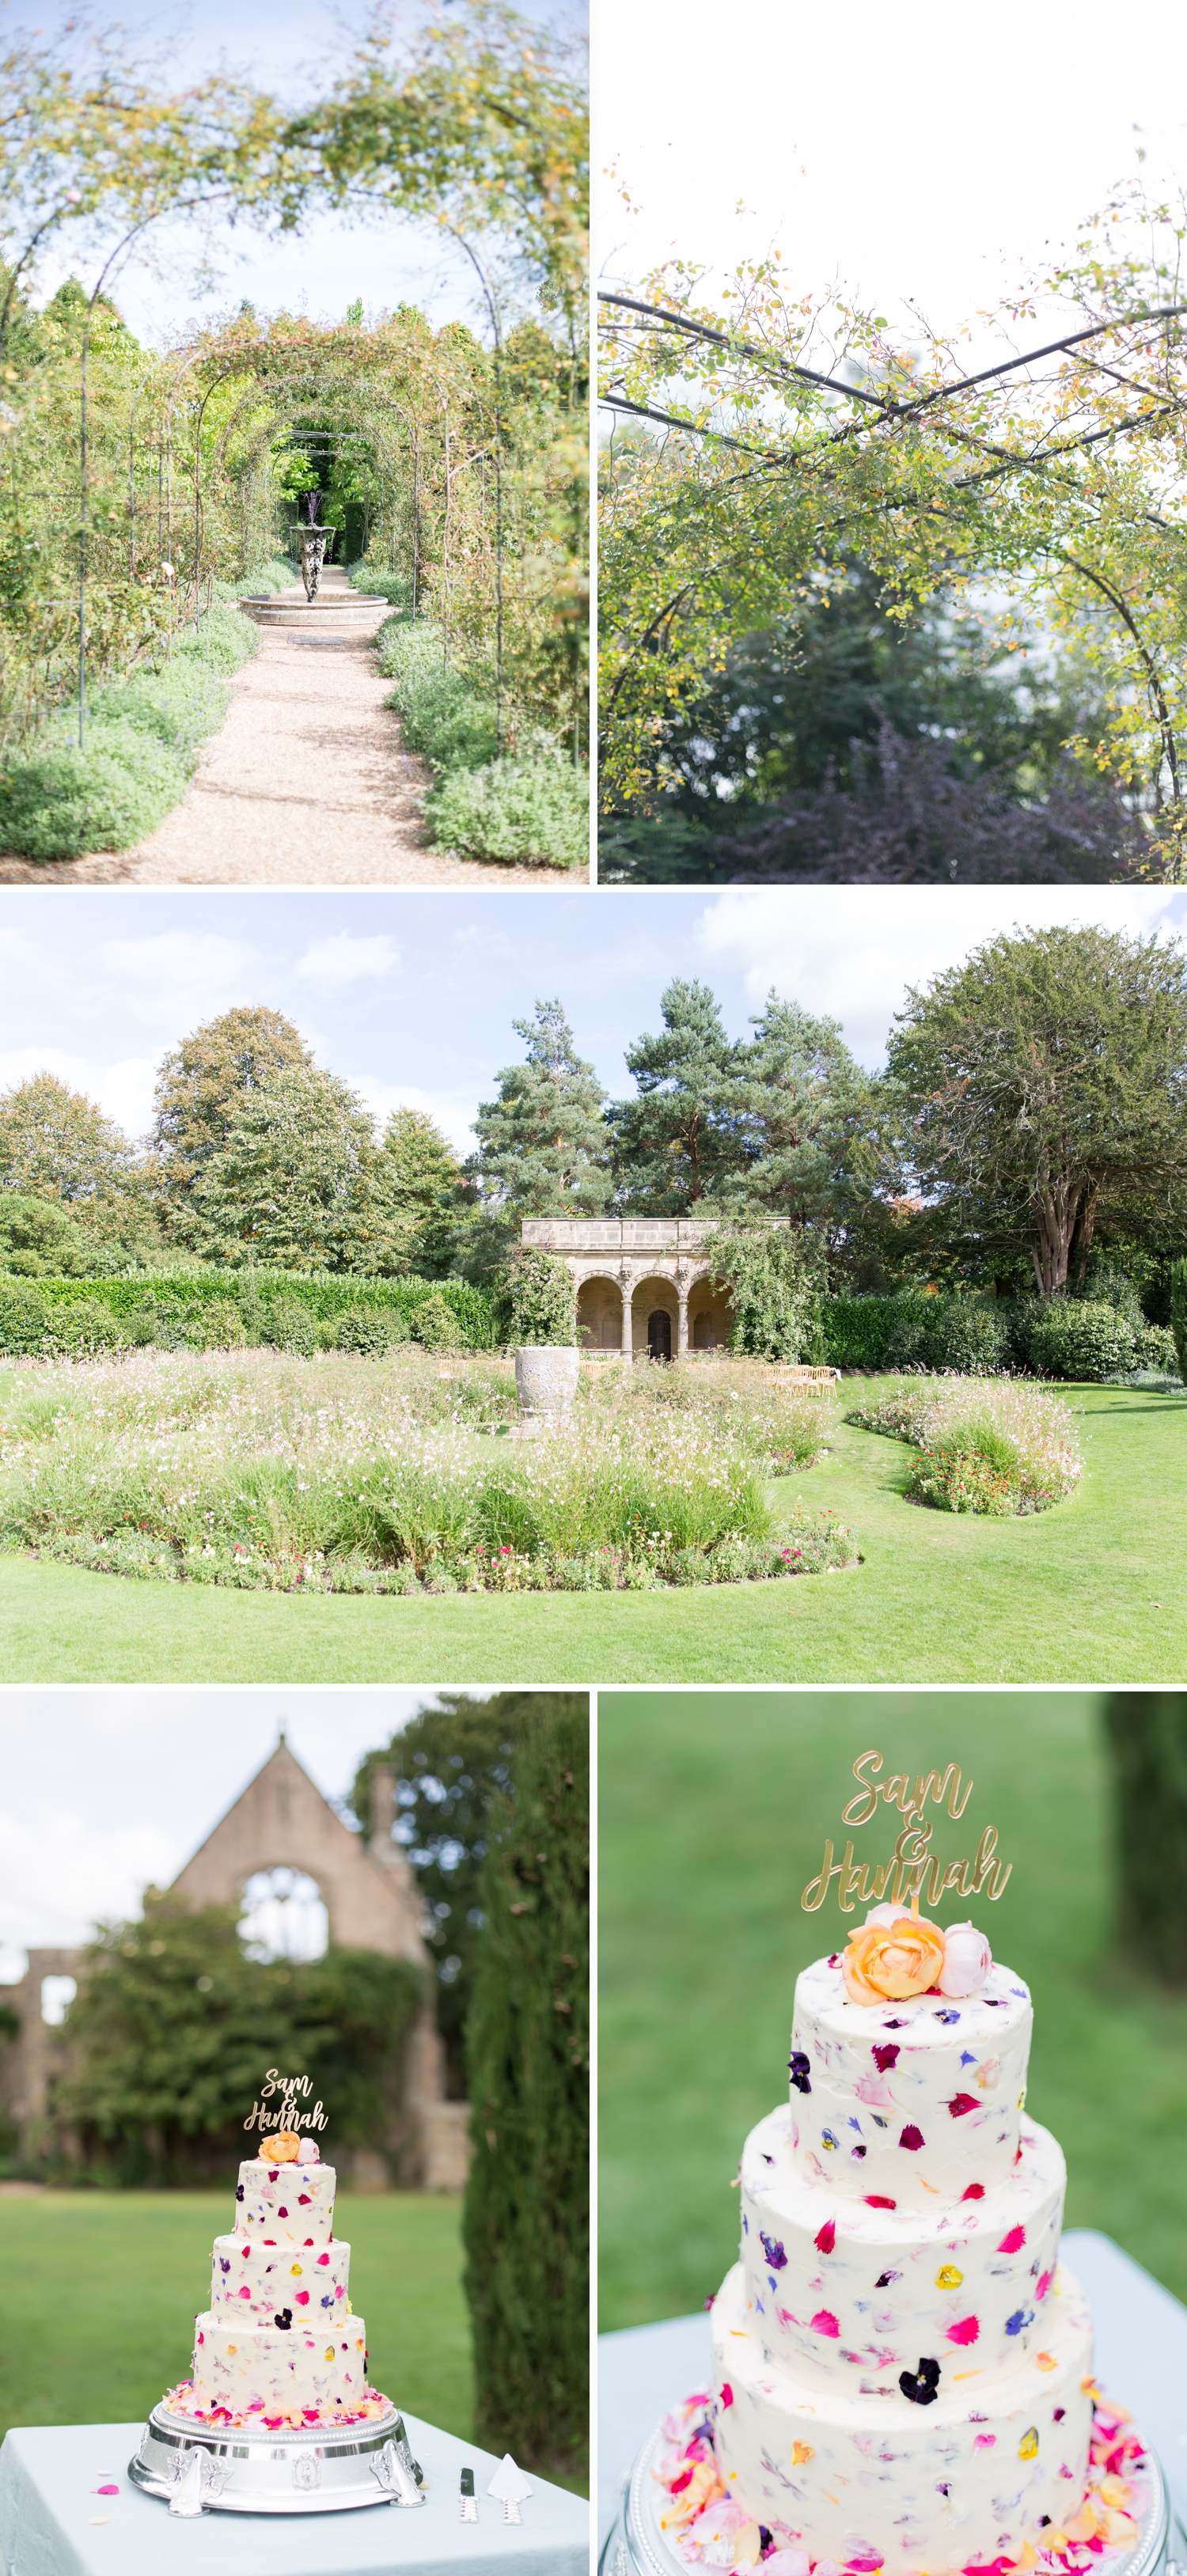 An English Garden Wedding in an Italian Loggia, Hannah & Sam at Nymans National Trust